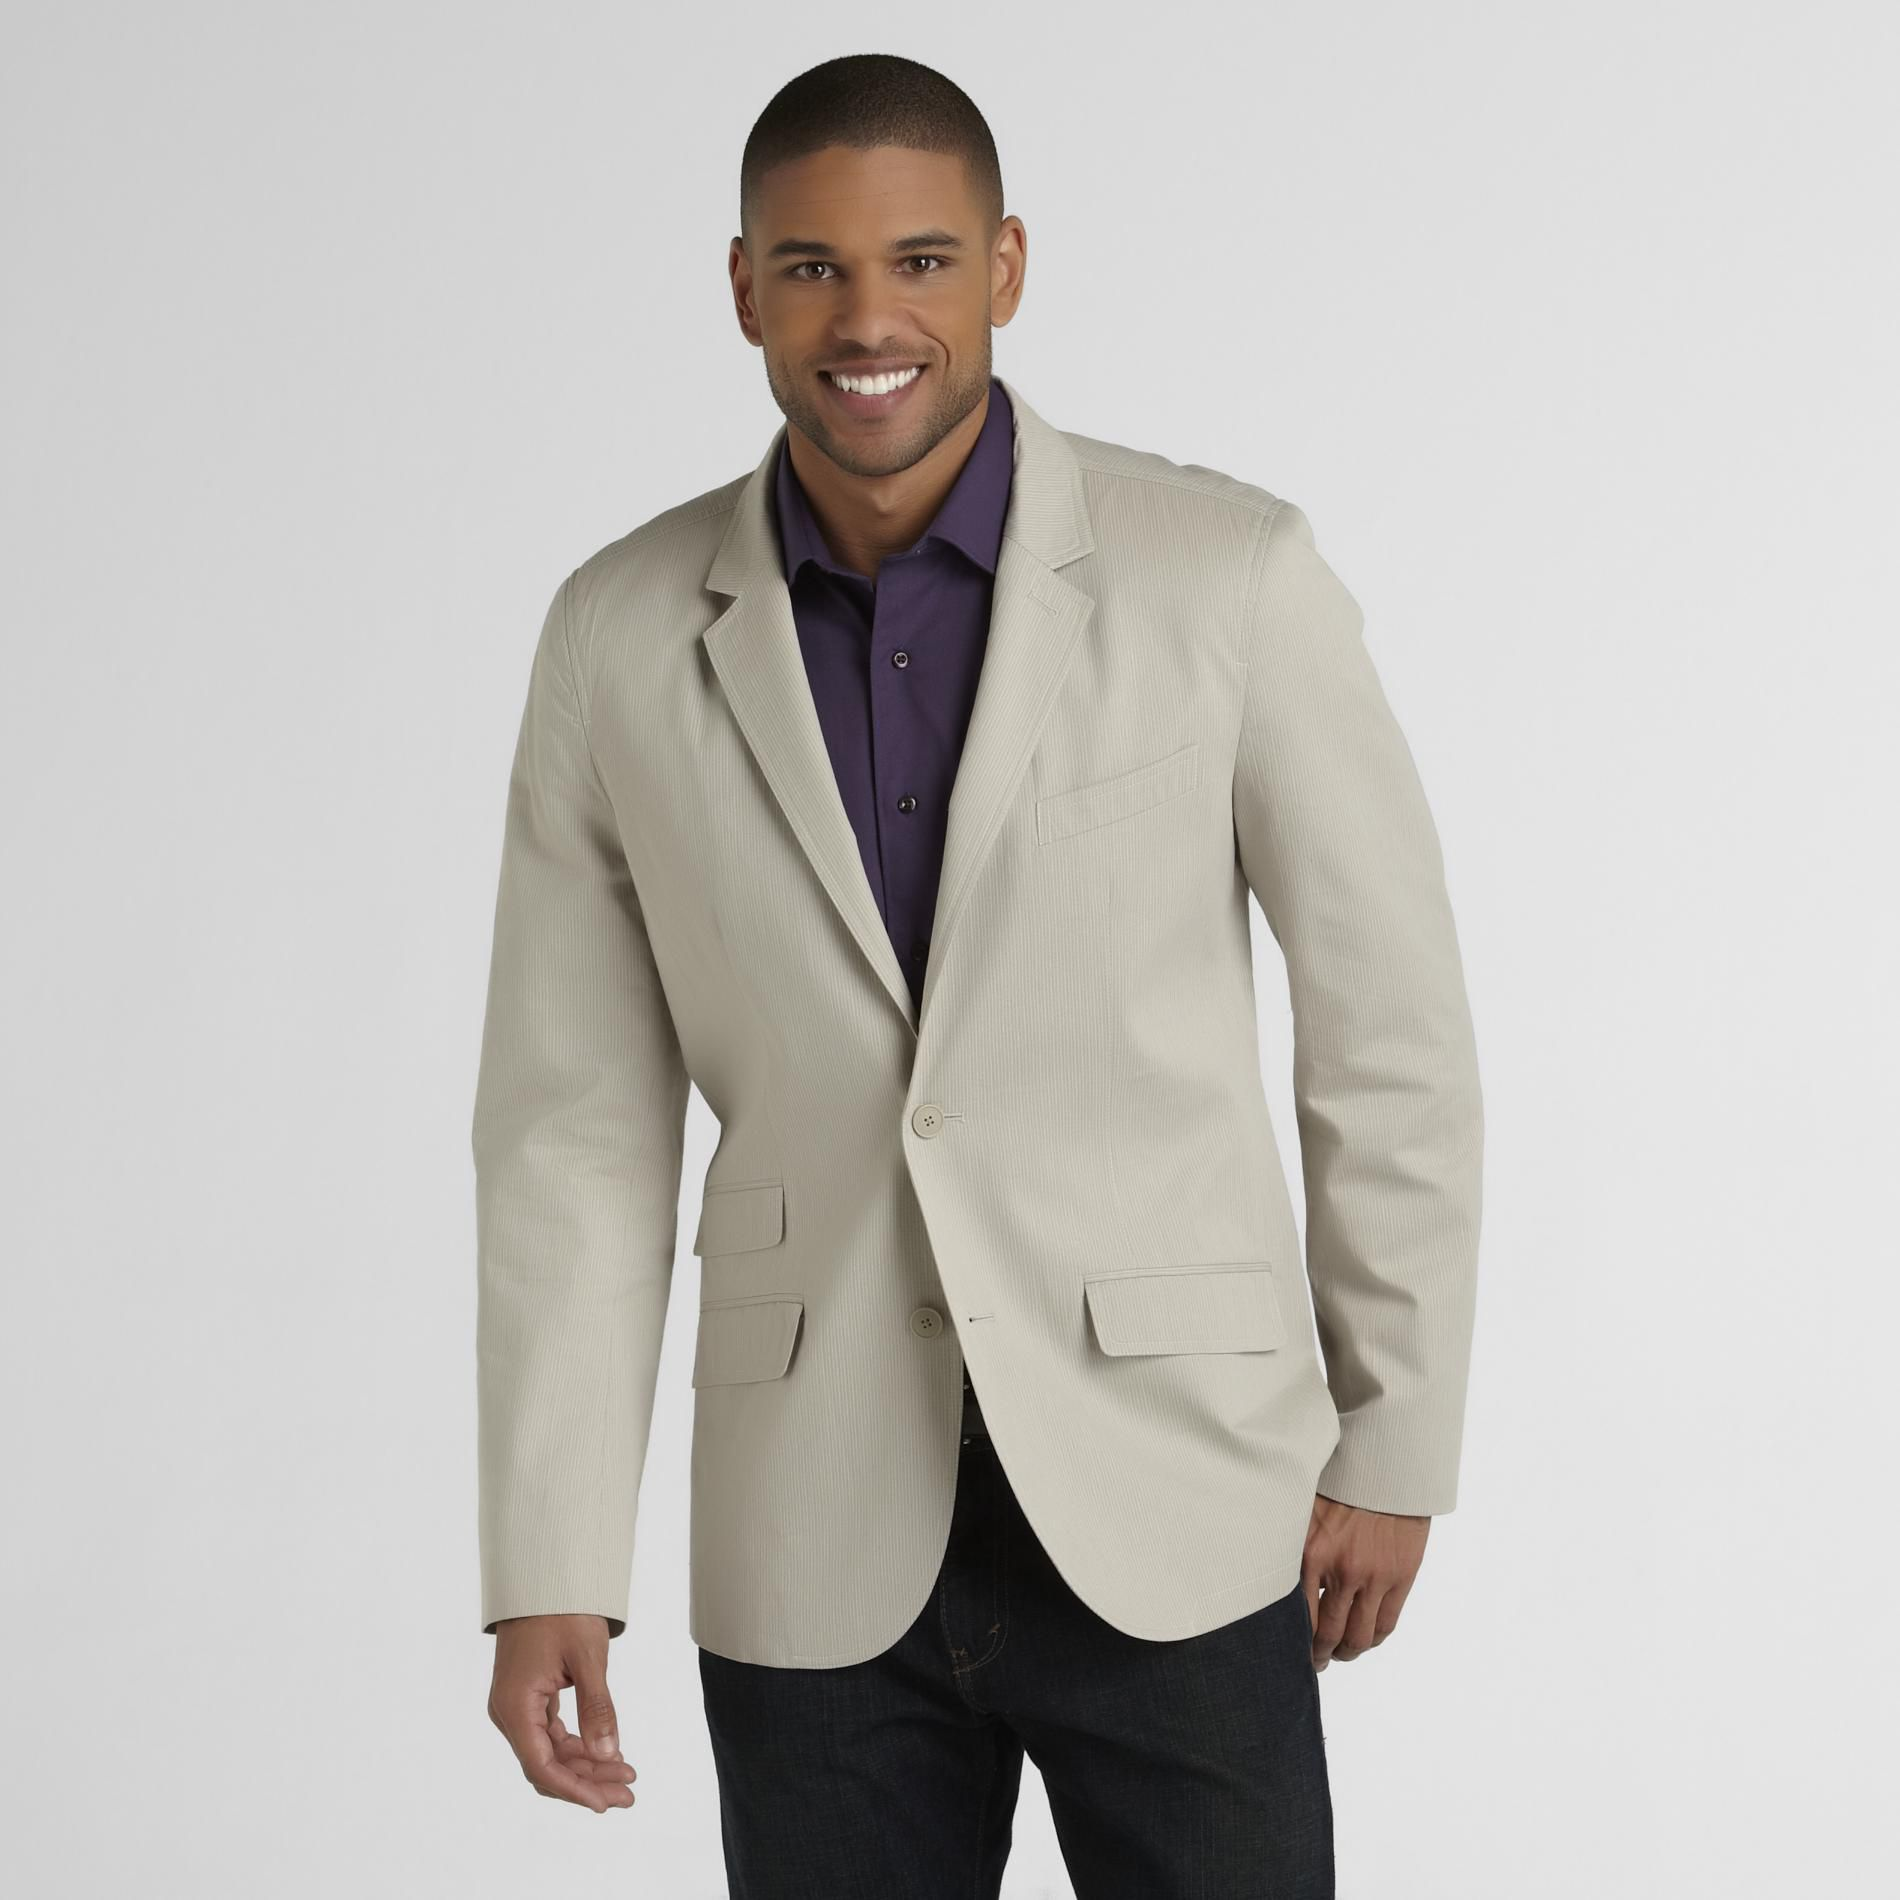 Men's Sport Coat - Striped at Sears.com